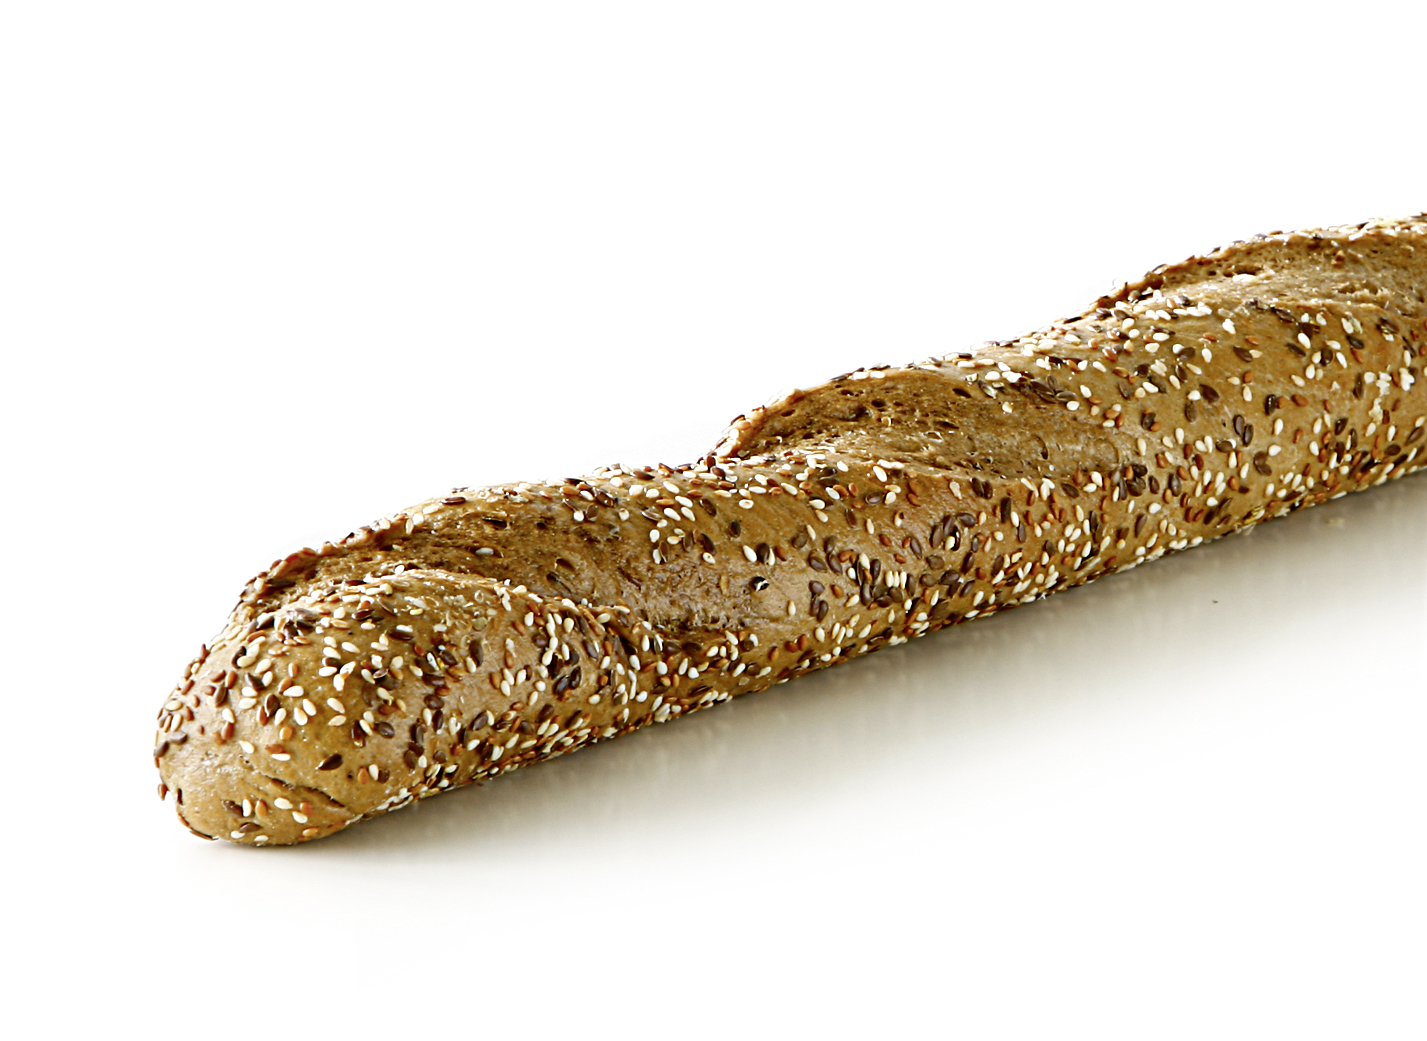 Fitness Baguette - Multigrain baguette with linseeds, sesame, sunflower seeds and oat flakes length: 52 cm